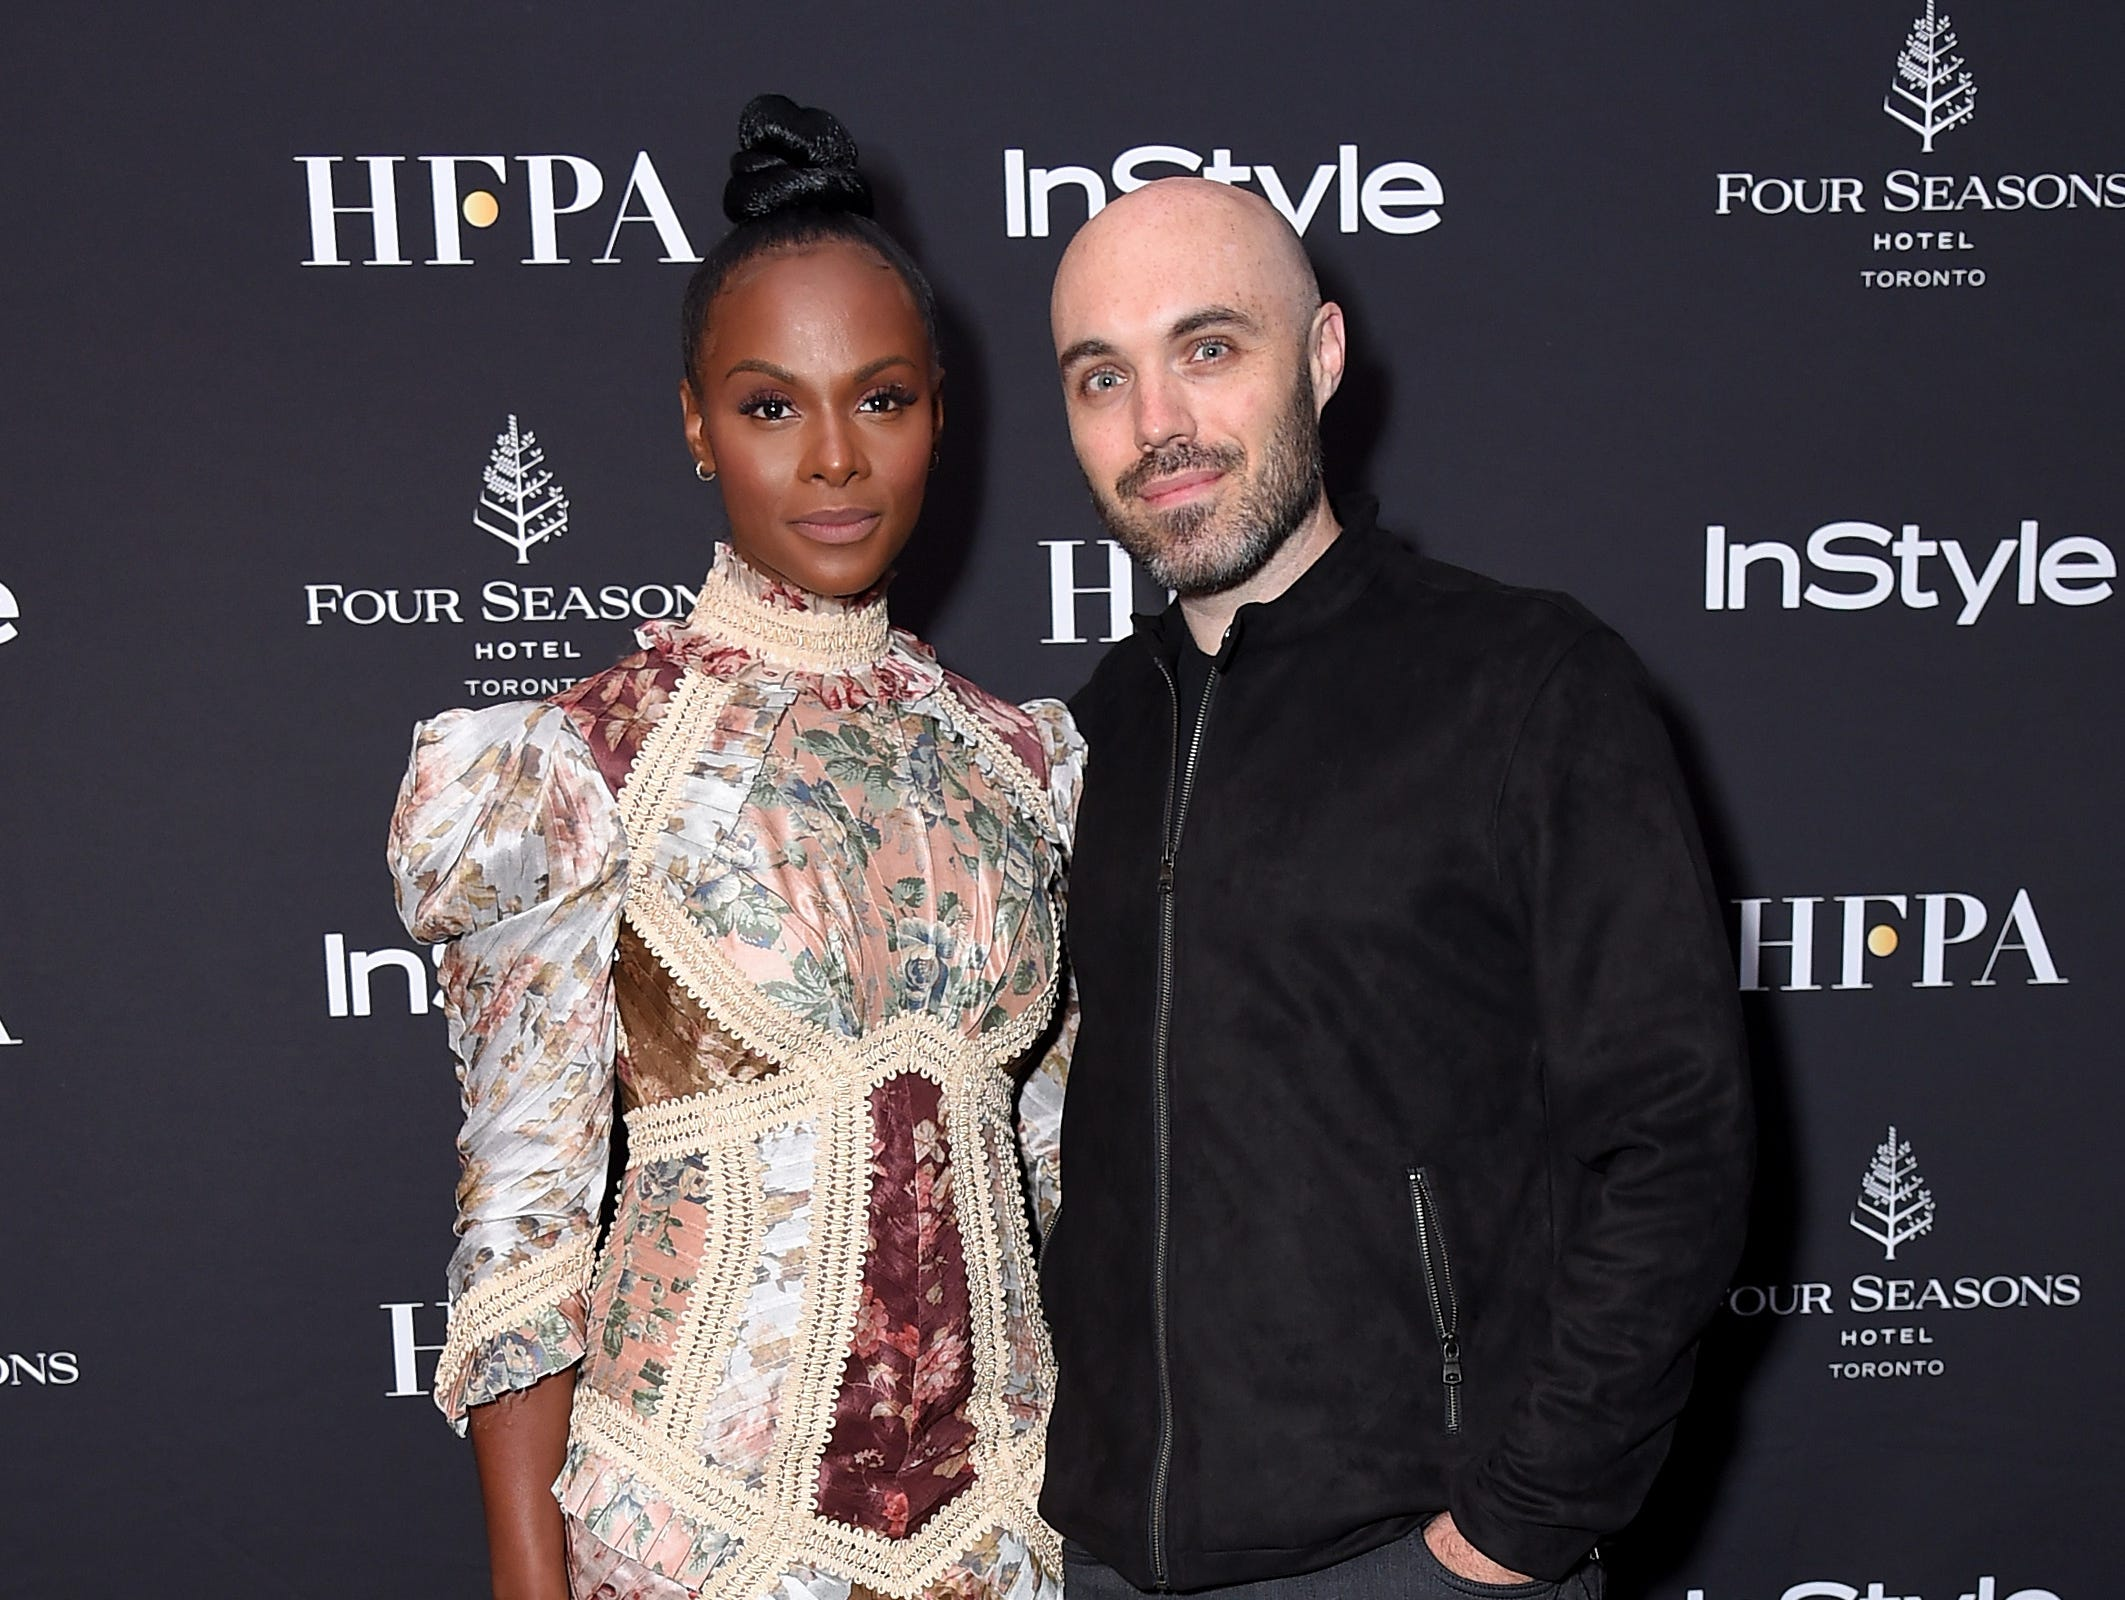 TORONTO, ON - SEPTEMBER 08:  Tika Sumpter (L) and David Lowery attend The Hollywood Foreign Press Association and InStyle Party during 2018 Toronto International Film Festival at Four Seasons Hotel on September 8, 2018 in Toronto, Canada.  (Photo by Michael Loccisano/Getty Images,) ORG XMIT: 775218497 ORIG FILE ID: 1029587588